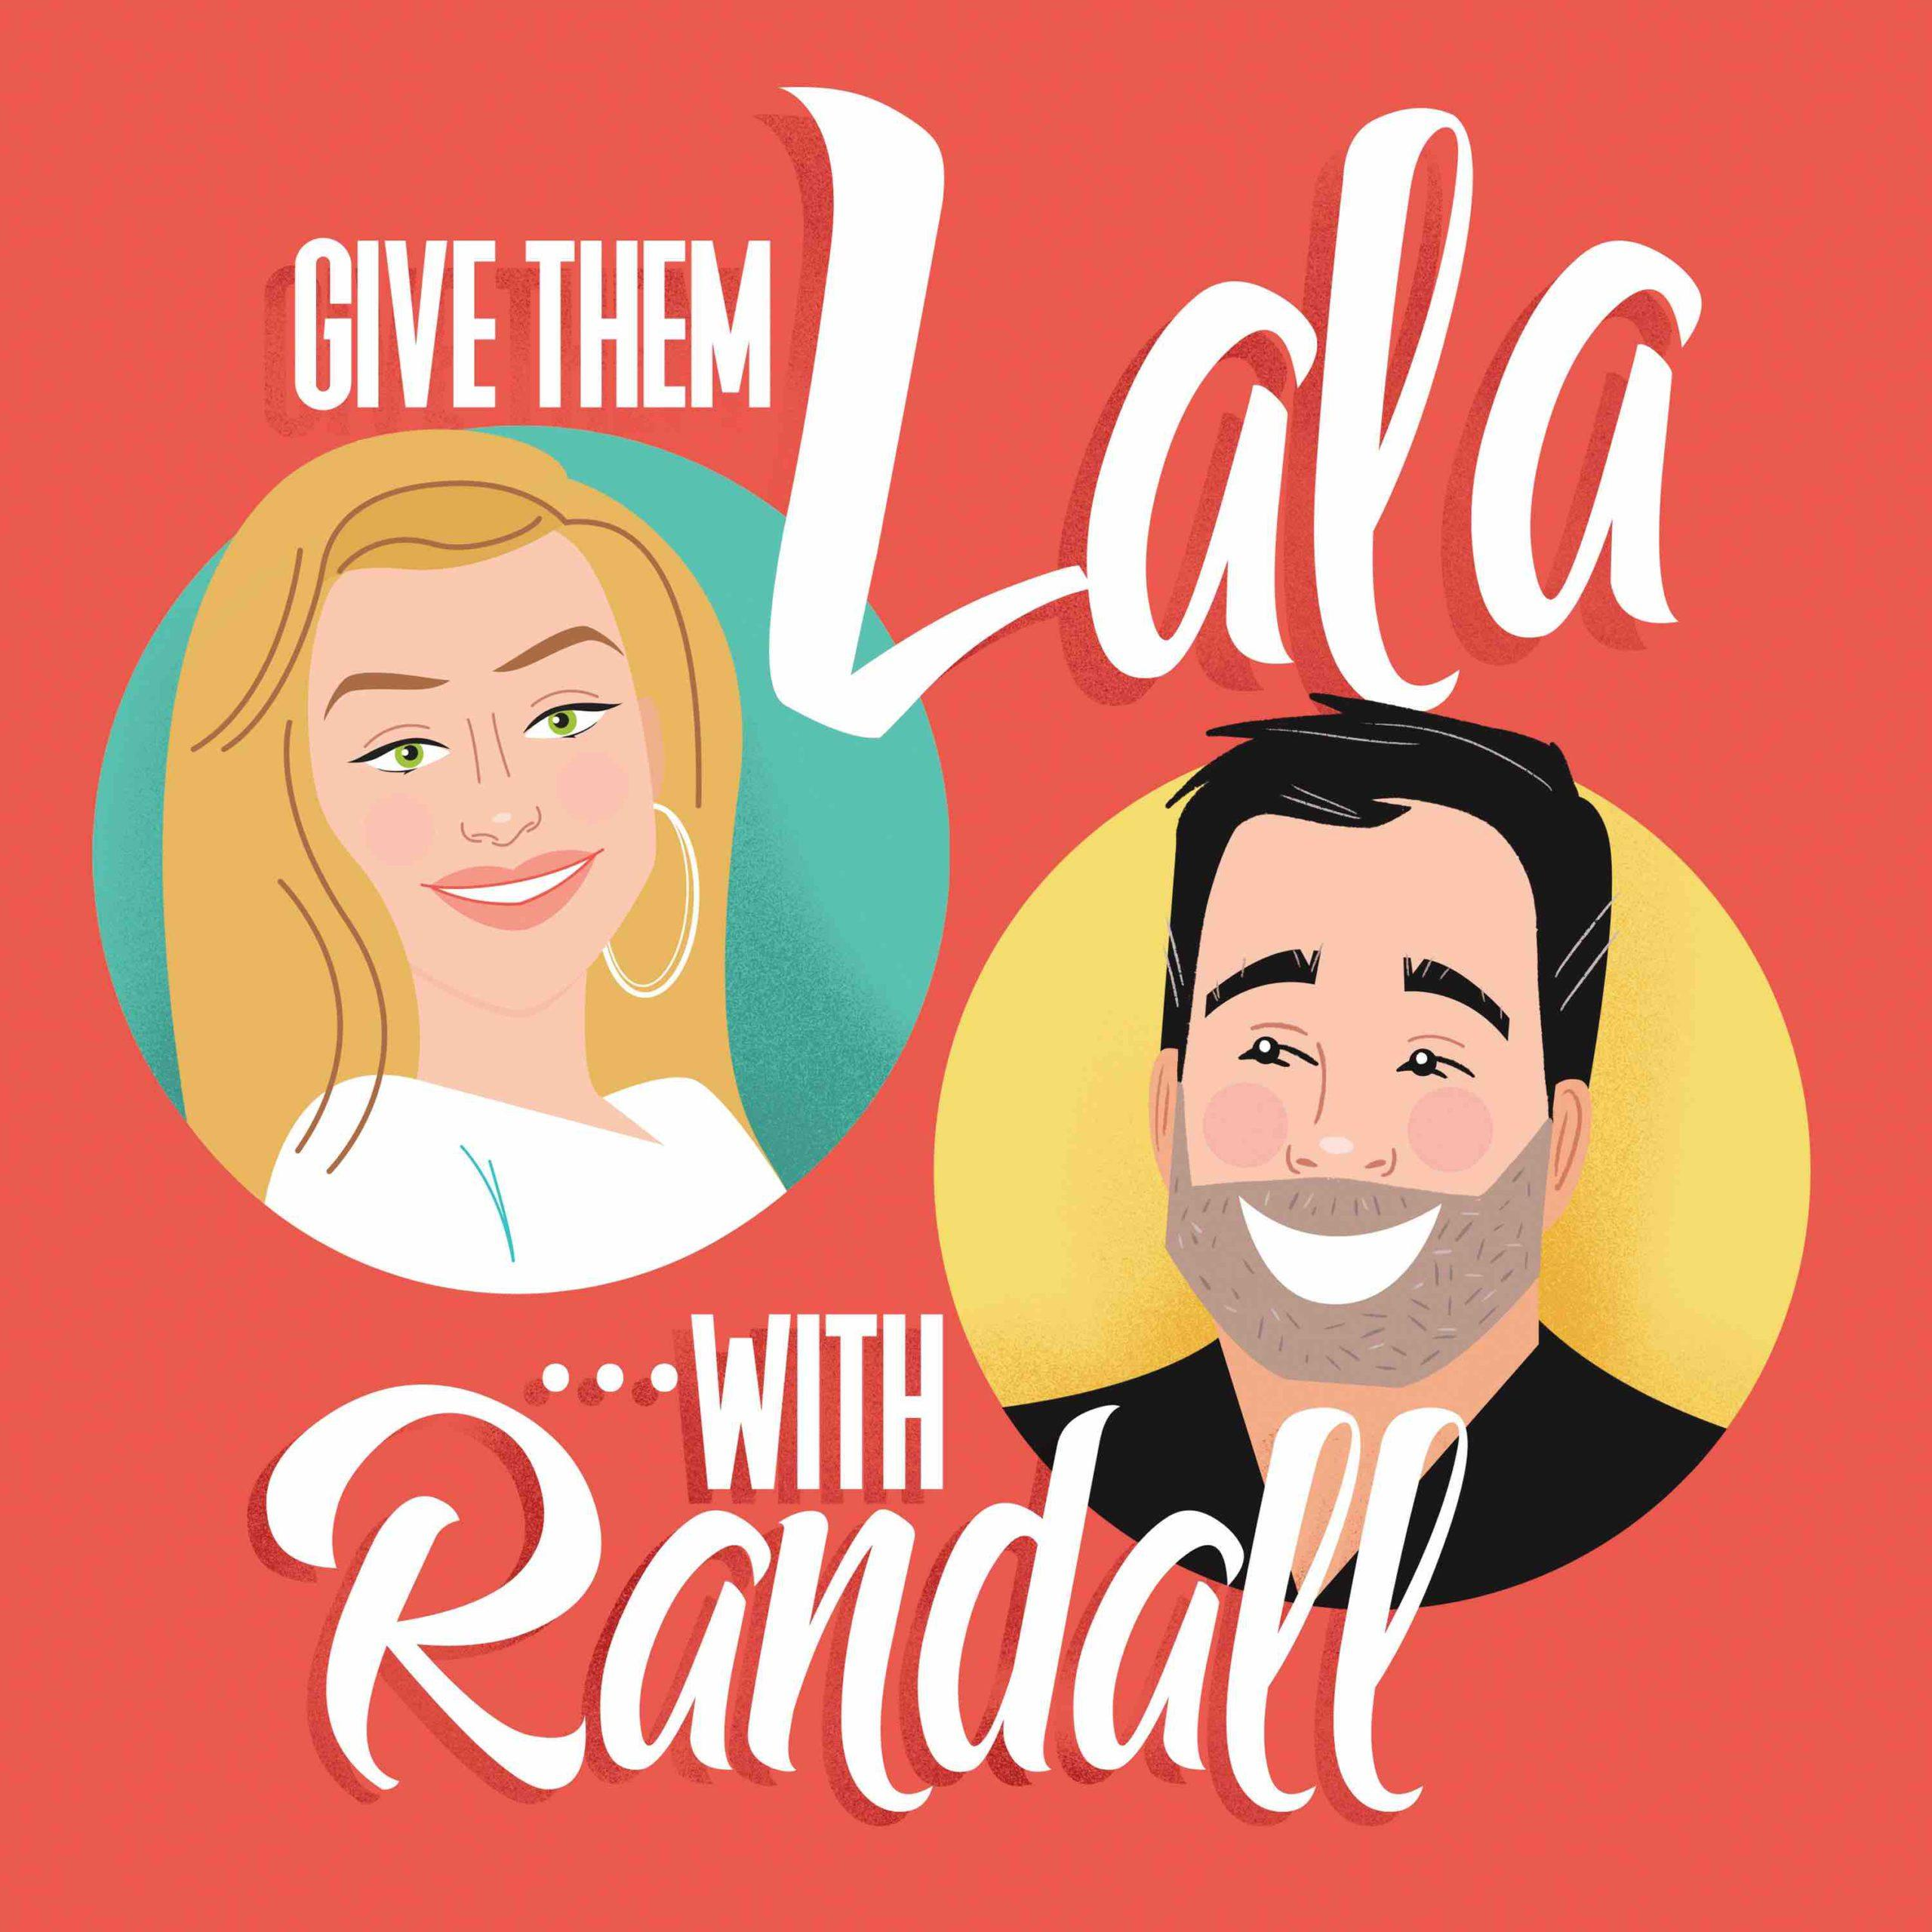 Give Them Lala… with Randall